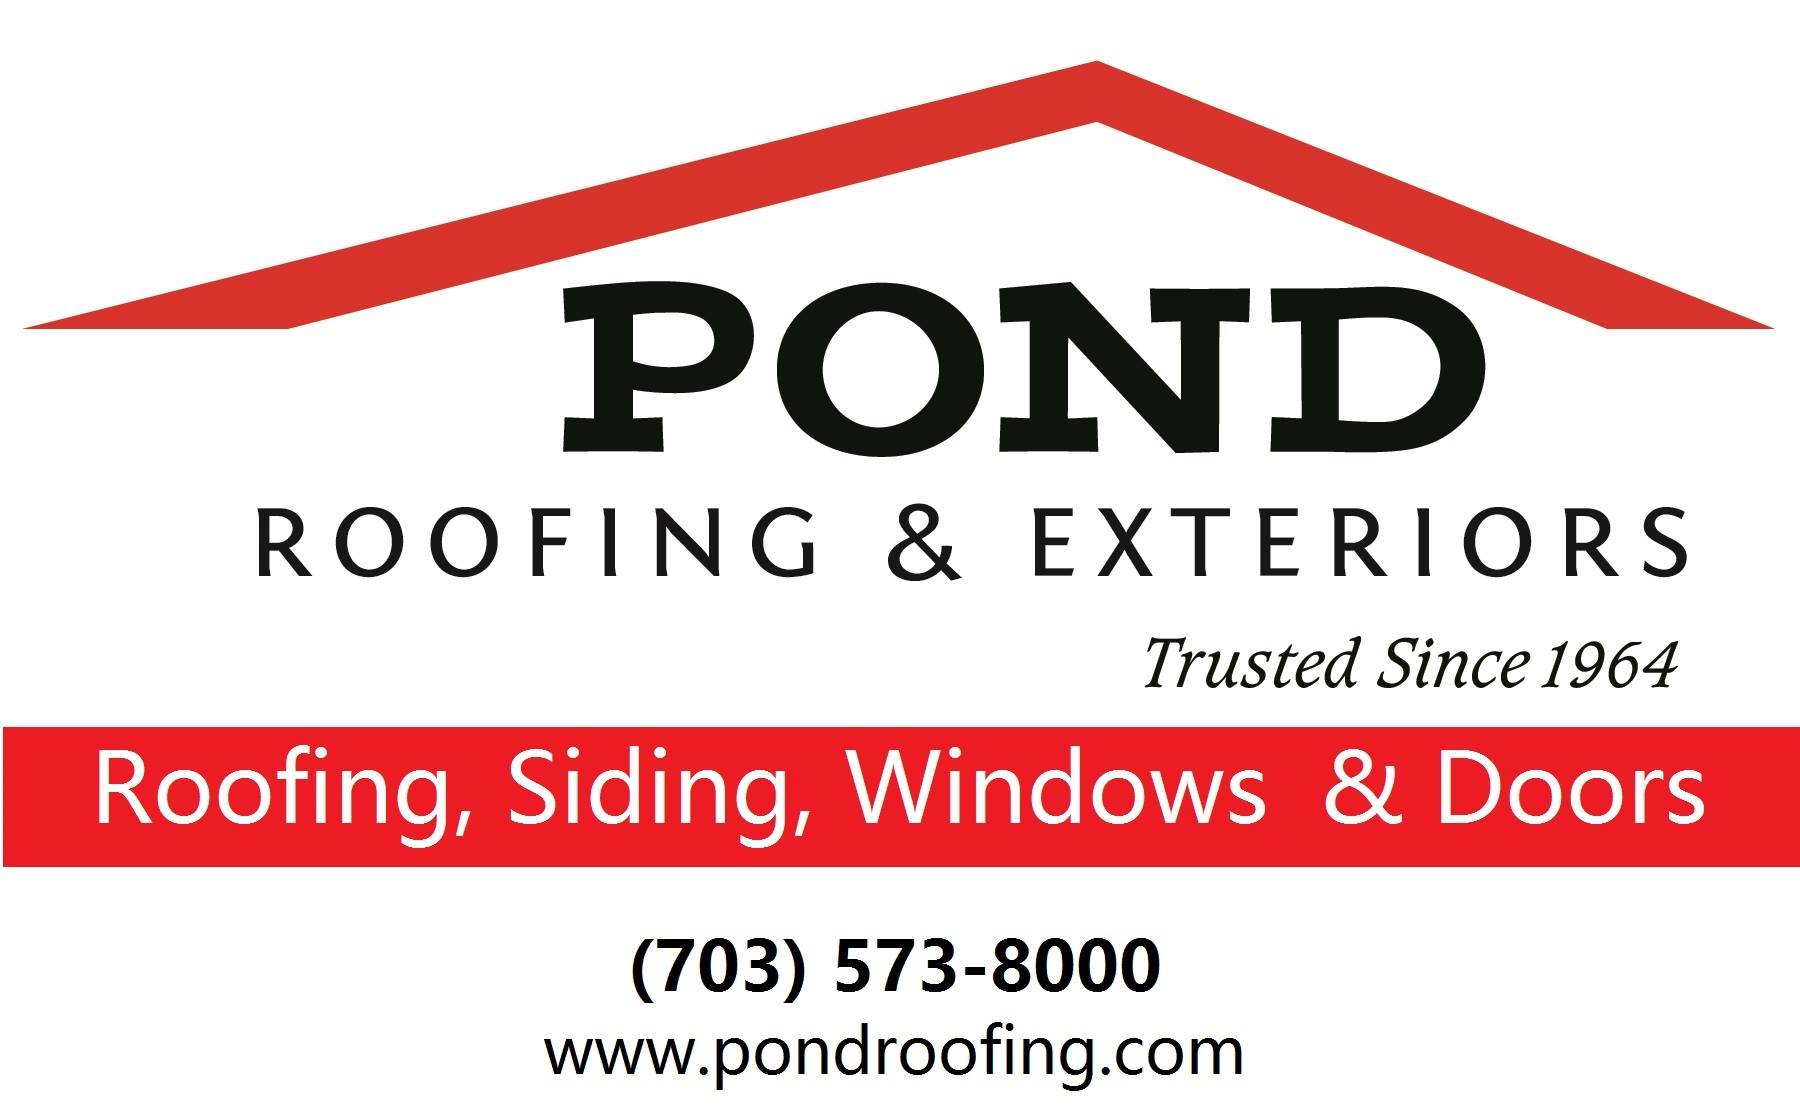 7 top rated roofing contractors in fairfax virginia for Pond companies near me